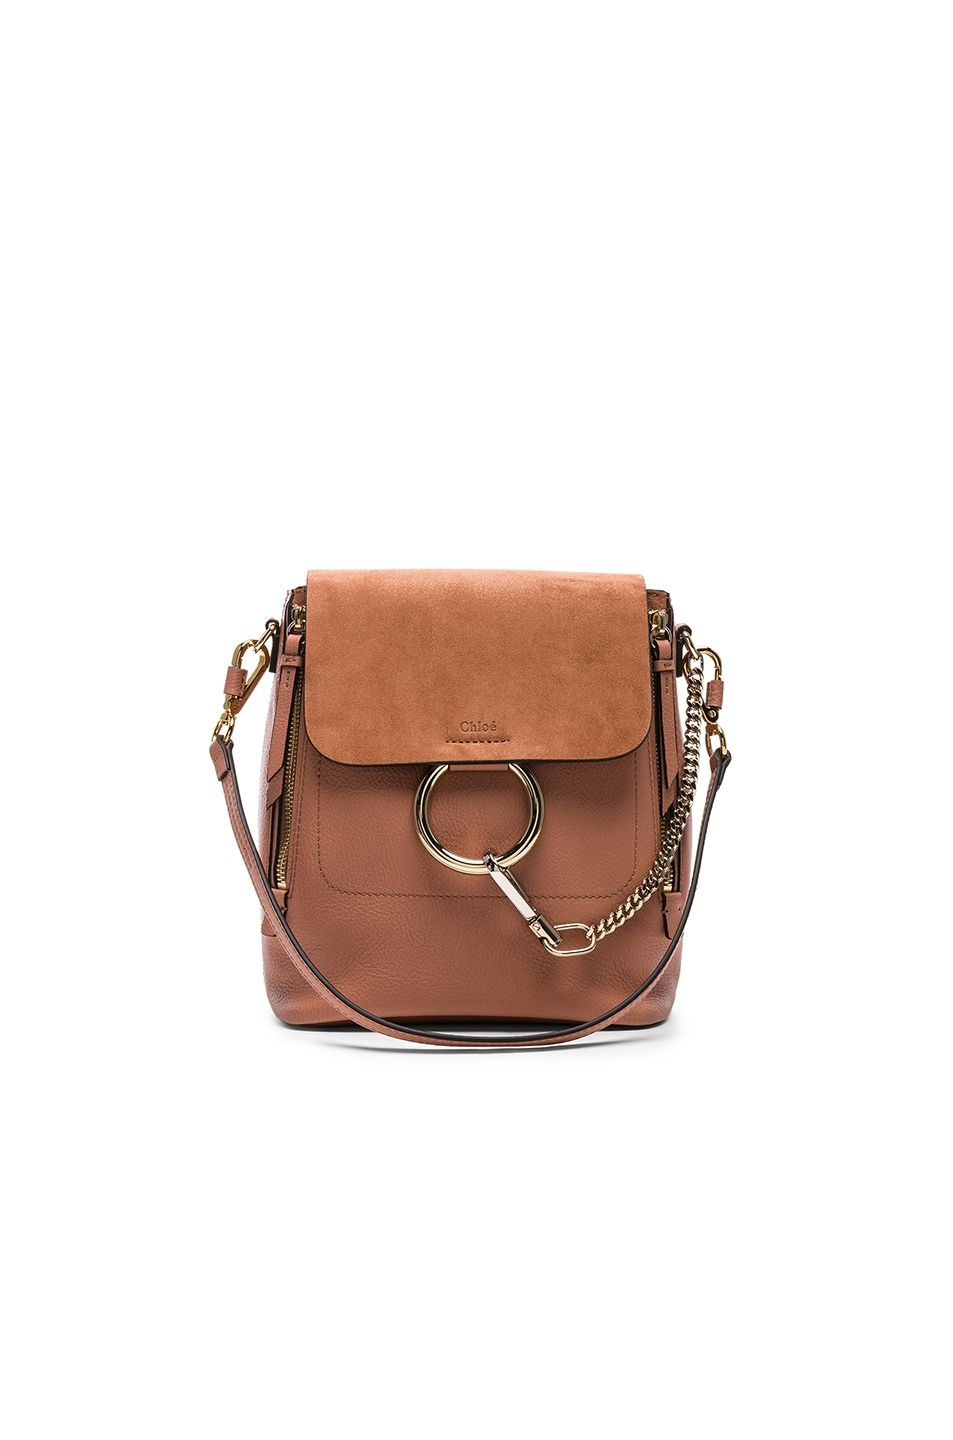 be6d98b6b5e6 Image 1 of Chloe Small Faye Calfskin & Suede Backpack in Nougat